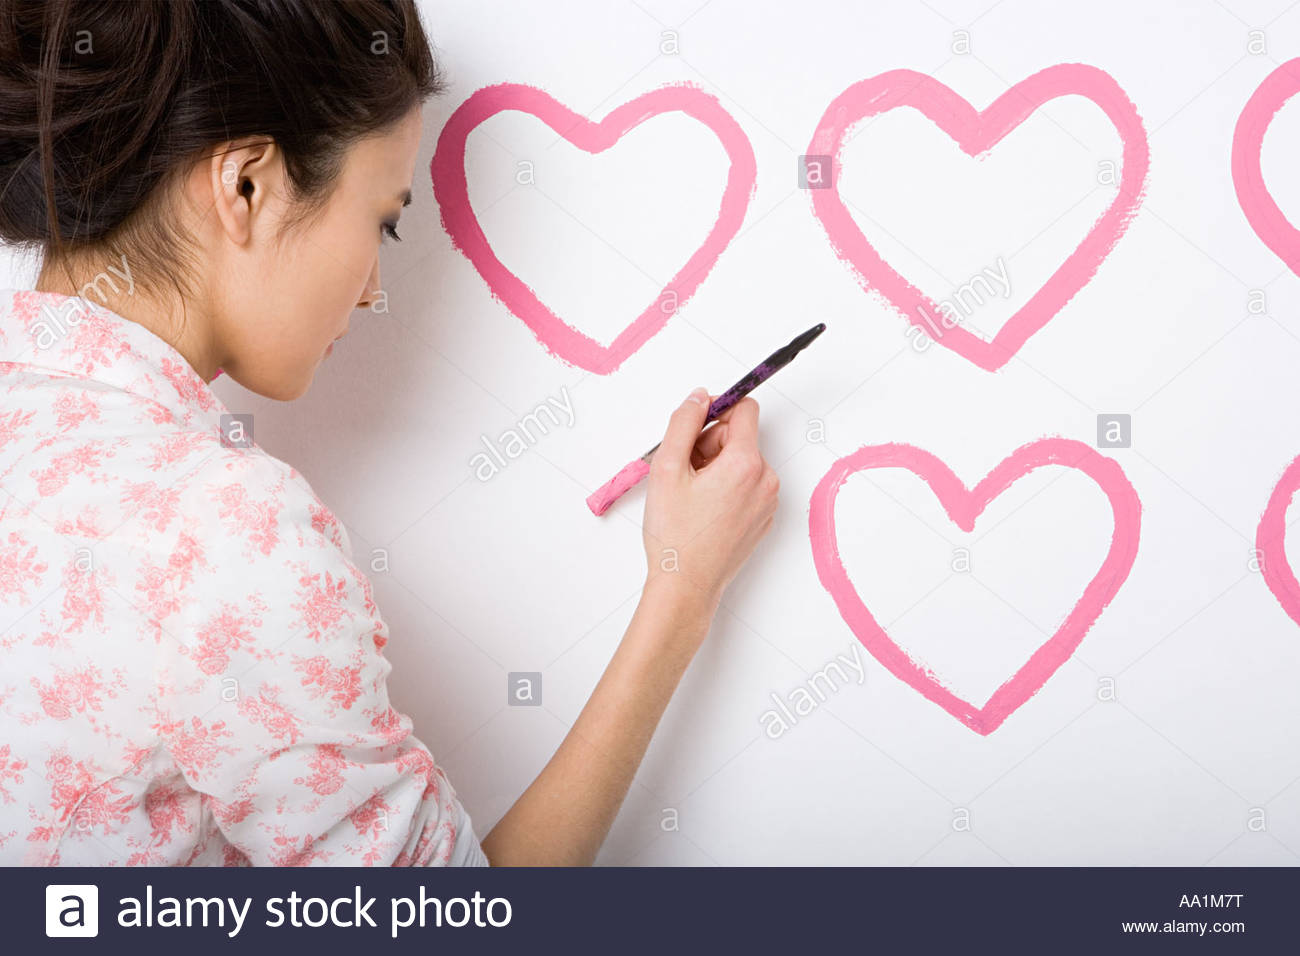 Young woman painting hearts on wall - Stock Image